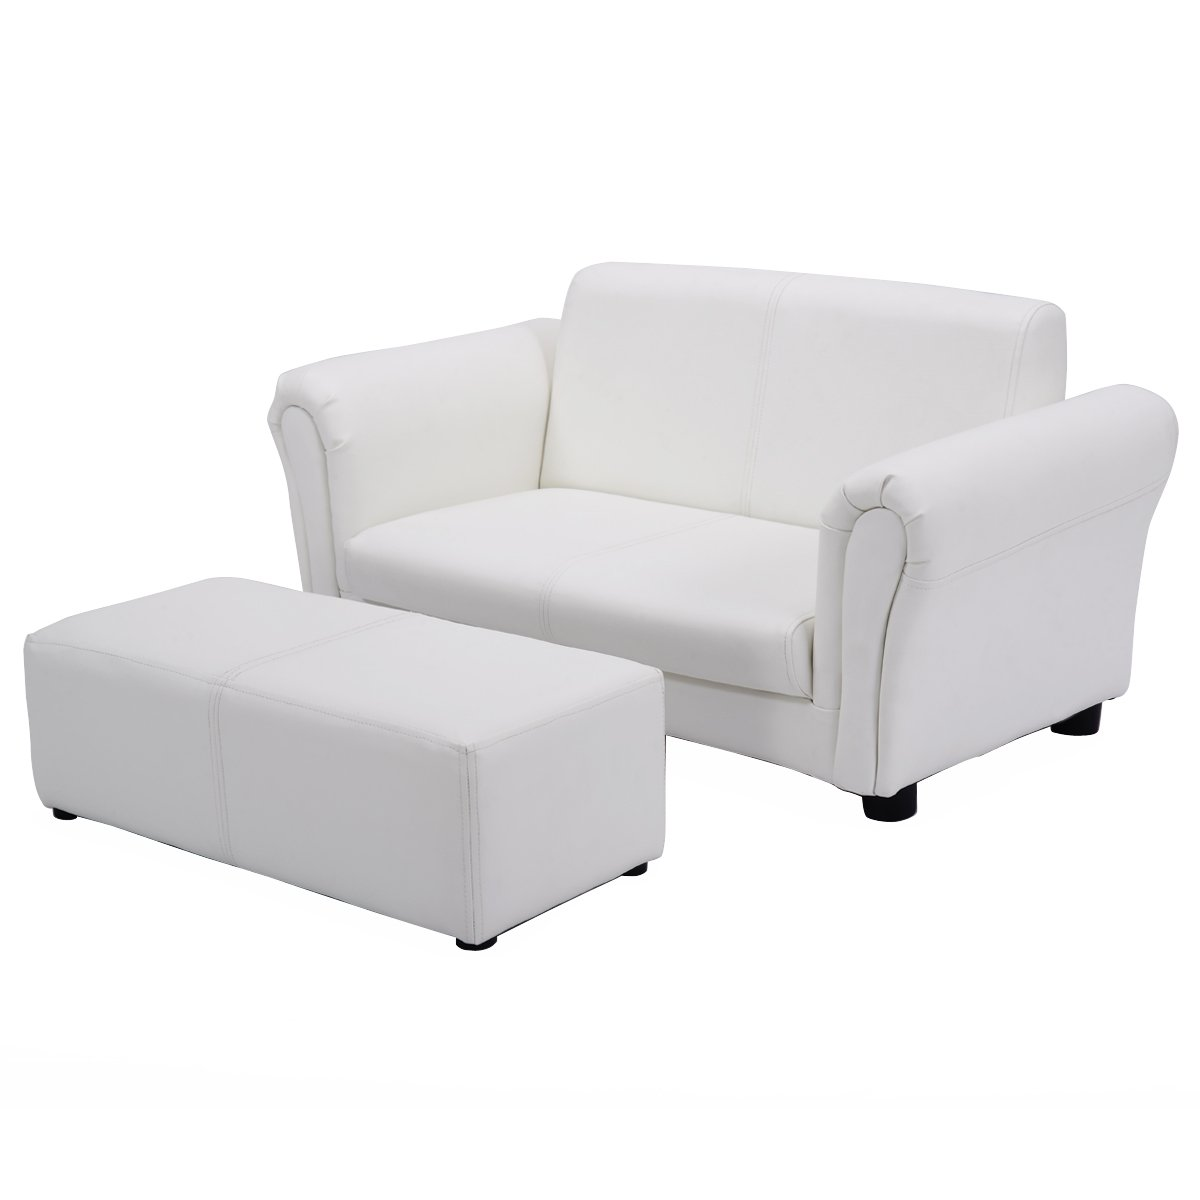 Costzon Kids Sofa Set 2 Seater Armrest Children Couch Lounge w/Footstool (White)